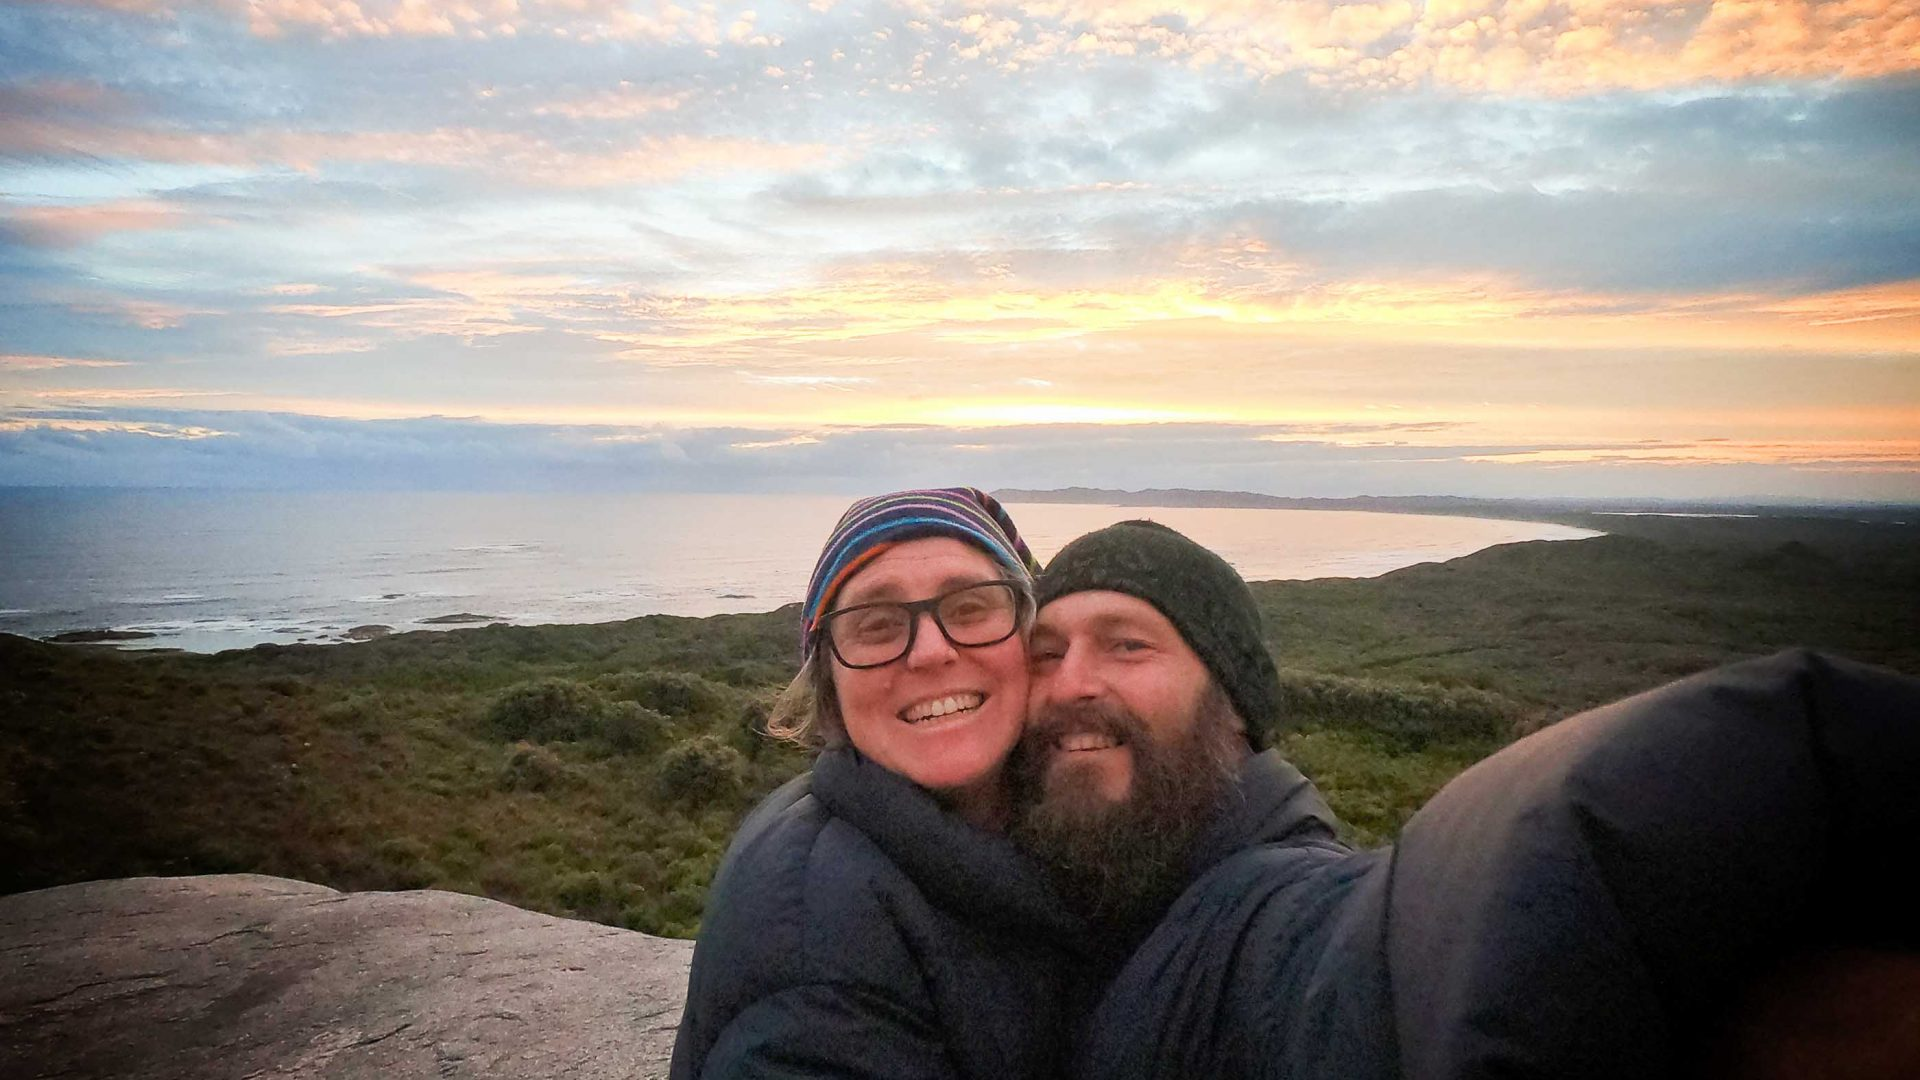 A couple do a selfie in front of a view of water, trees and sunset.